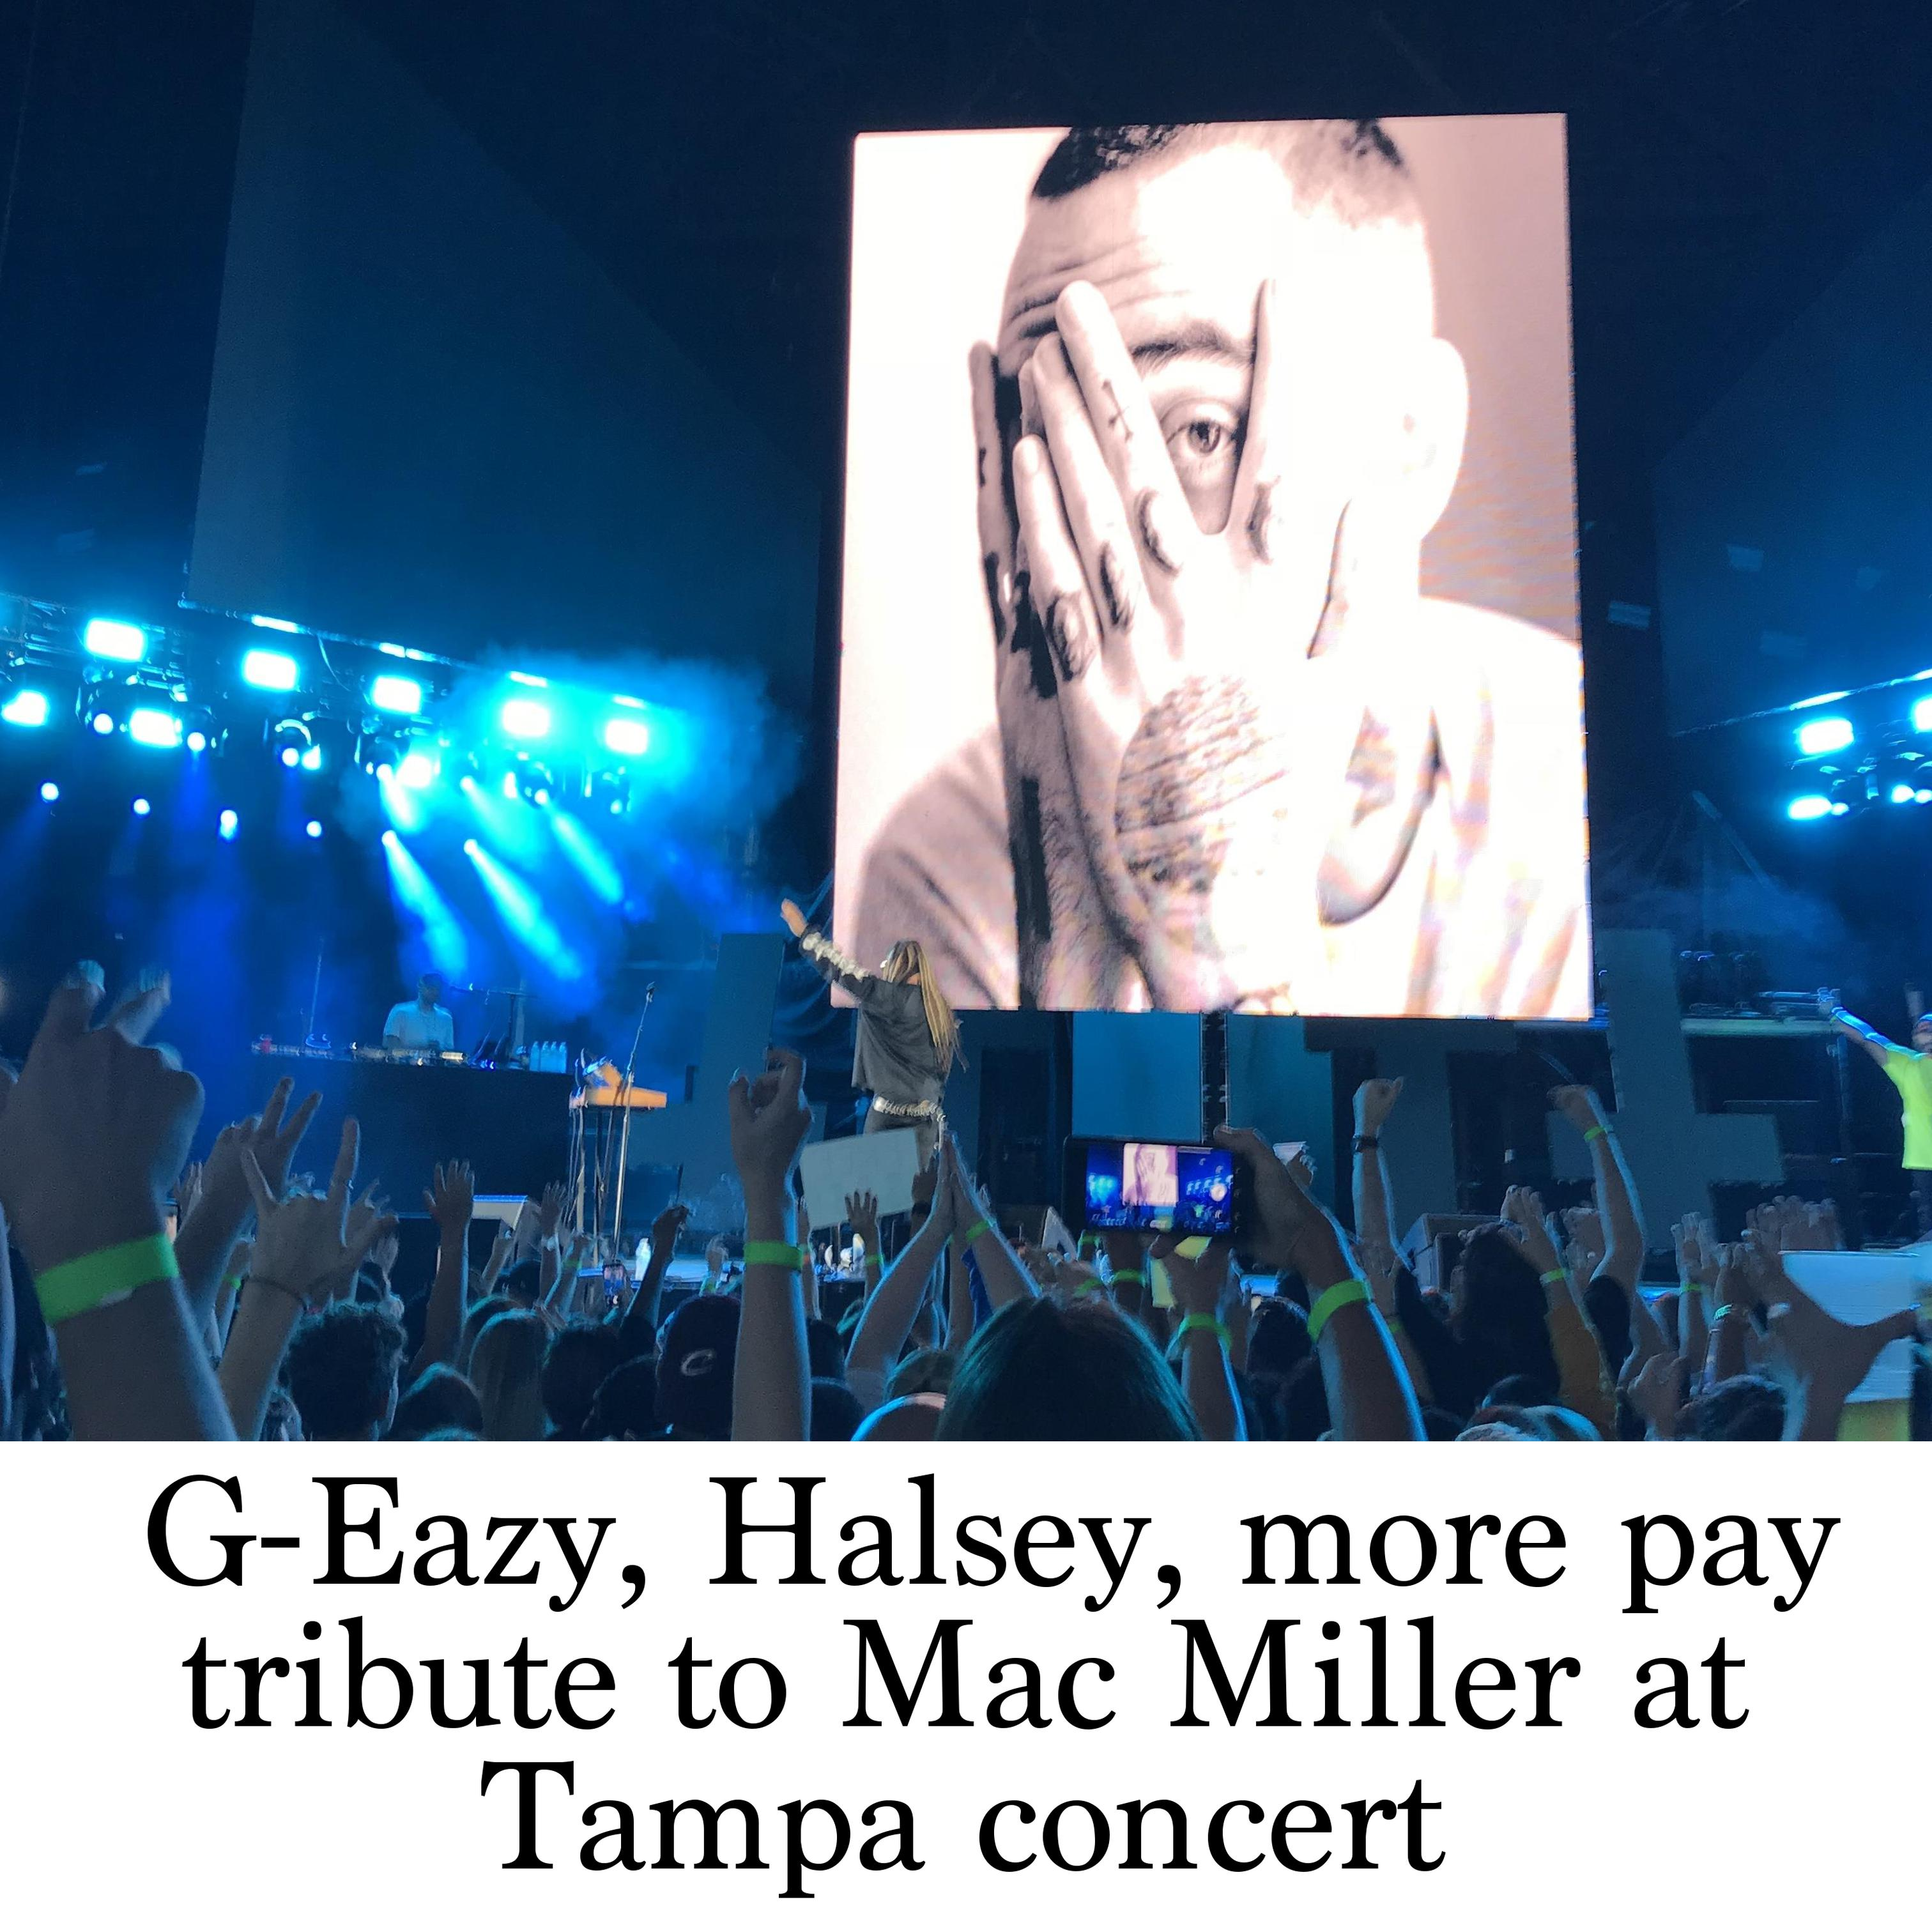 G-Eazy, Halsey, more pay tribute to Mac Miller at Tampa concert